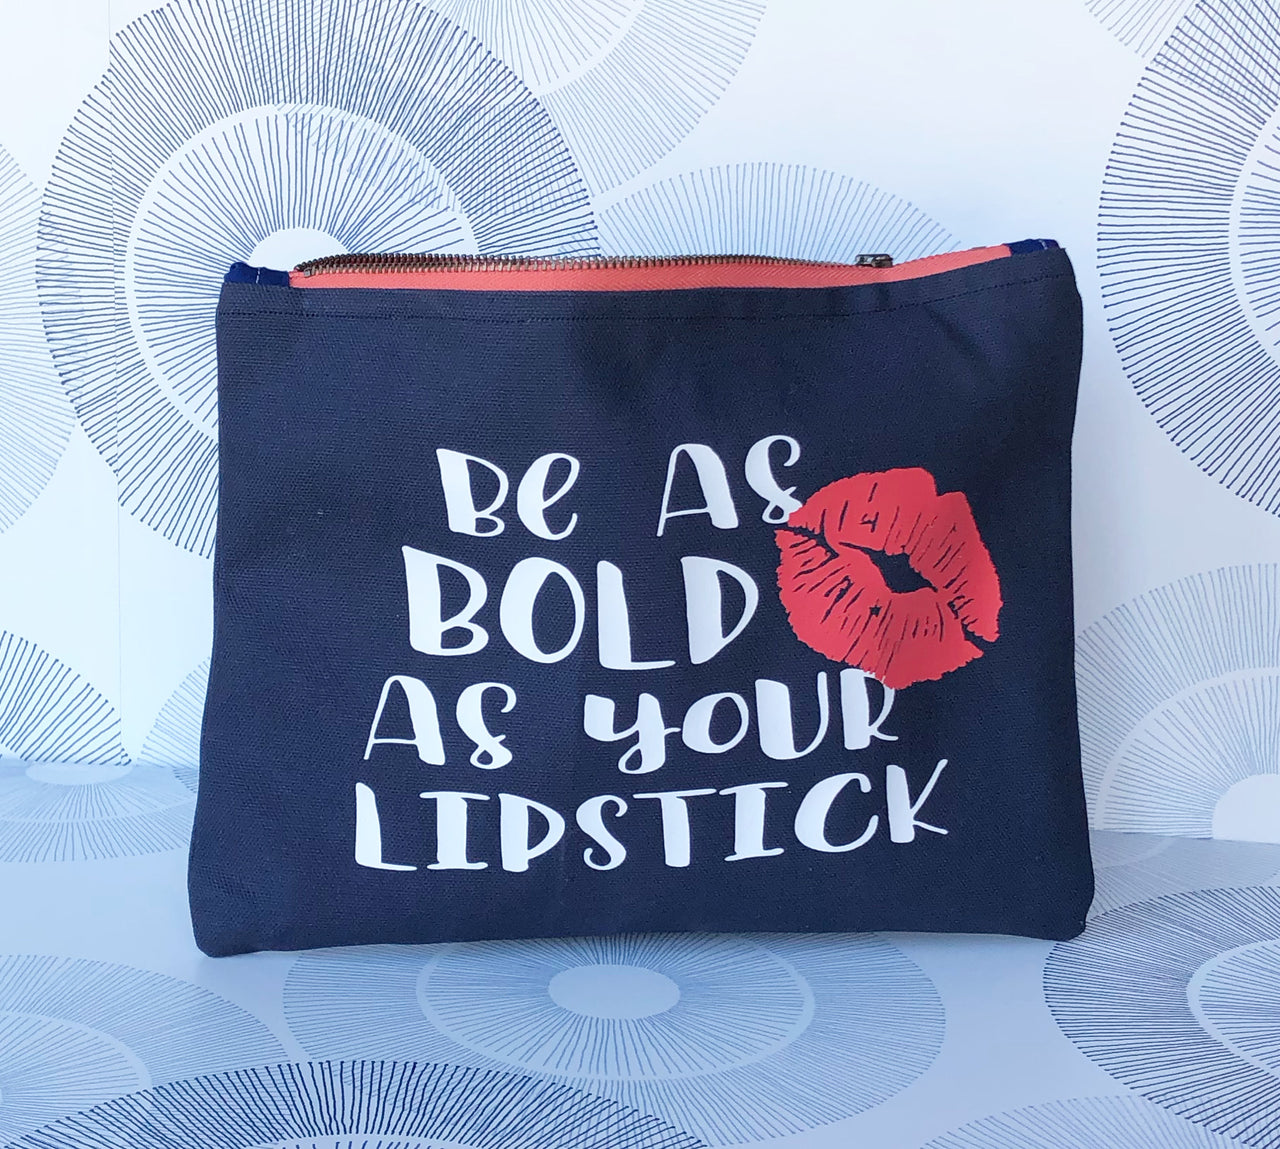 tote and carry your words